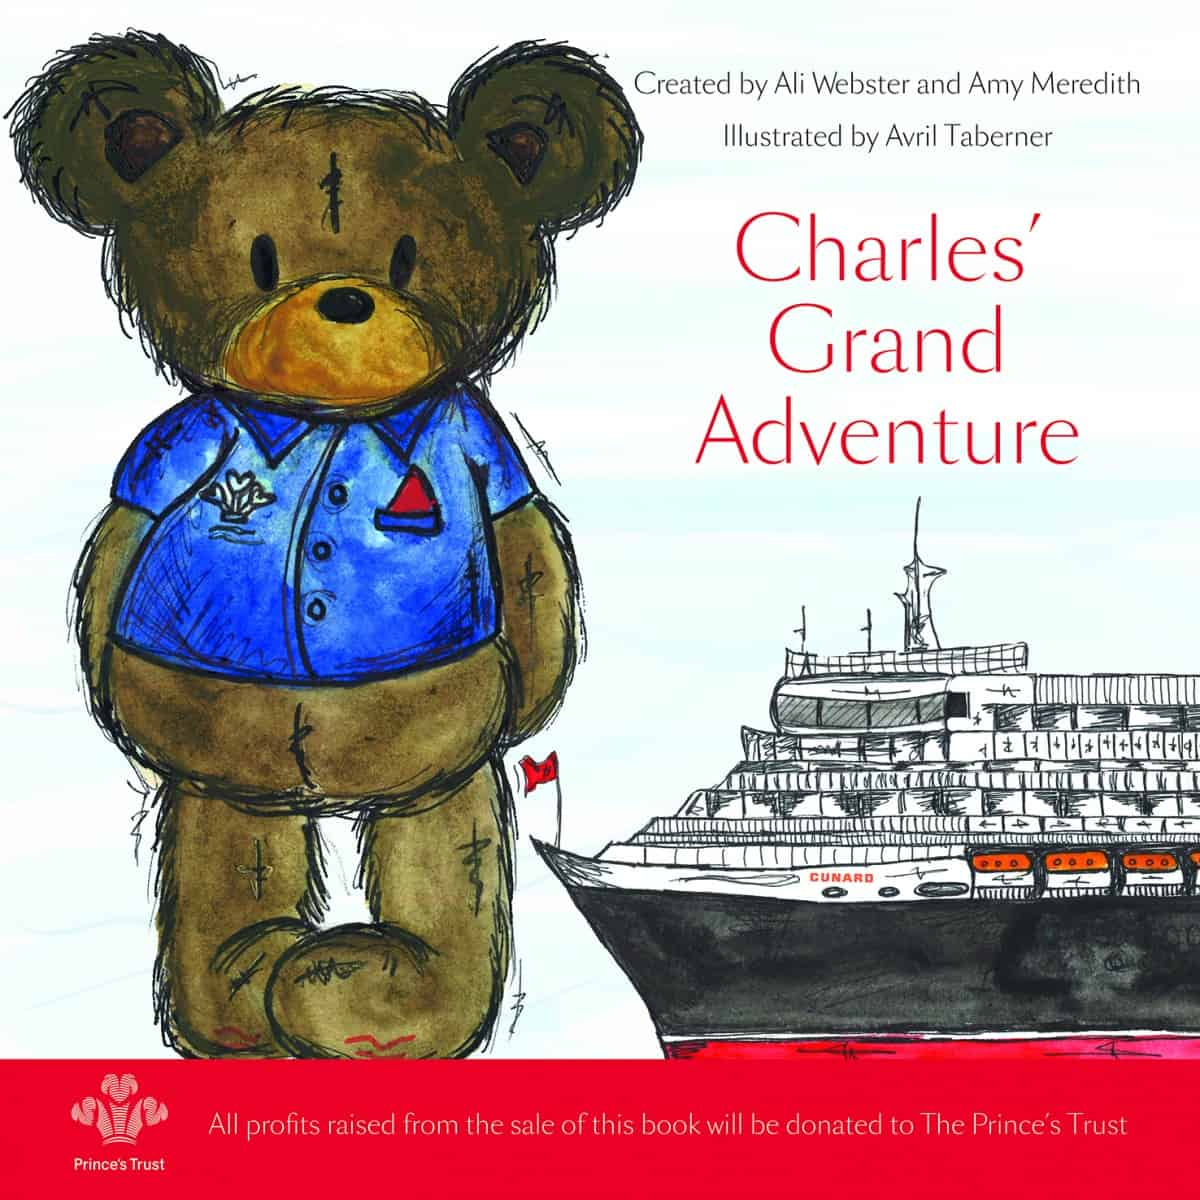 Charles' Grand Adventure - children's cruise book